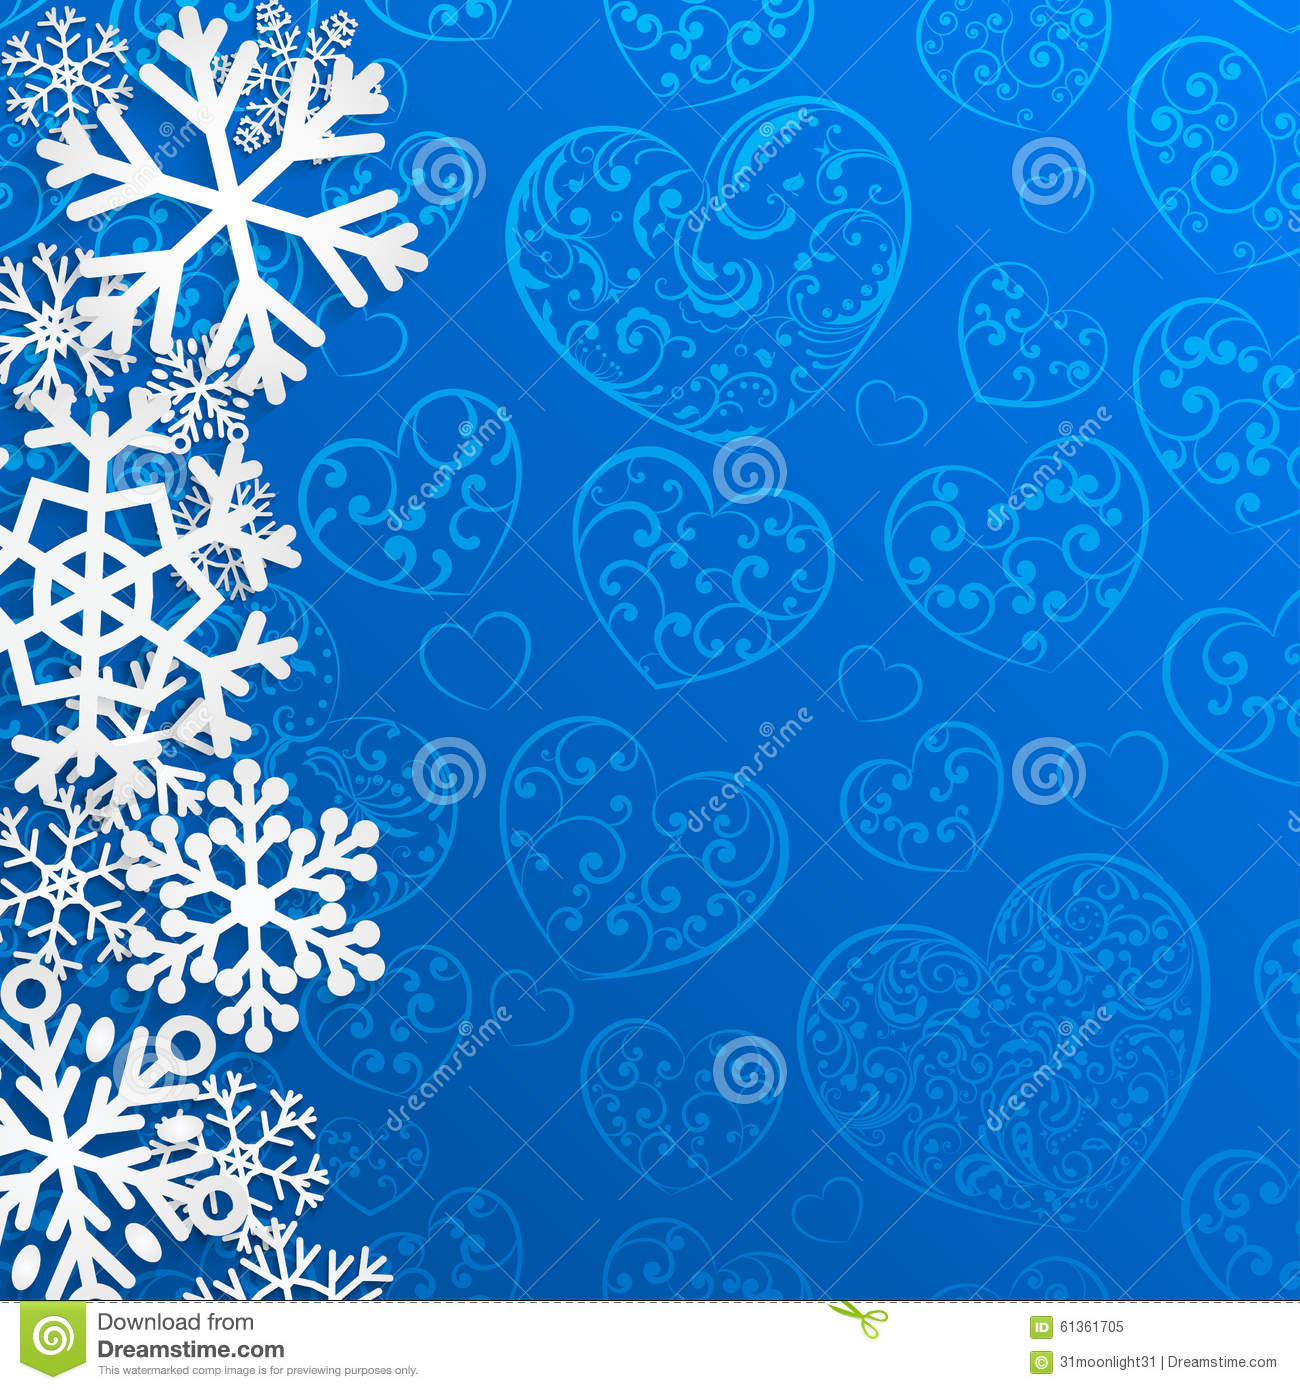 Christmas background with snowflakes on of